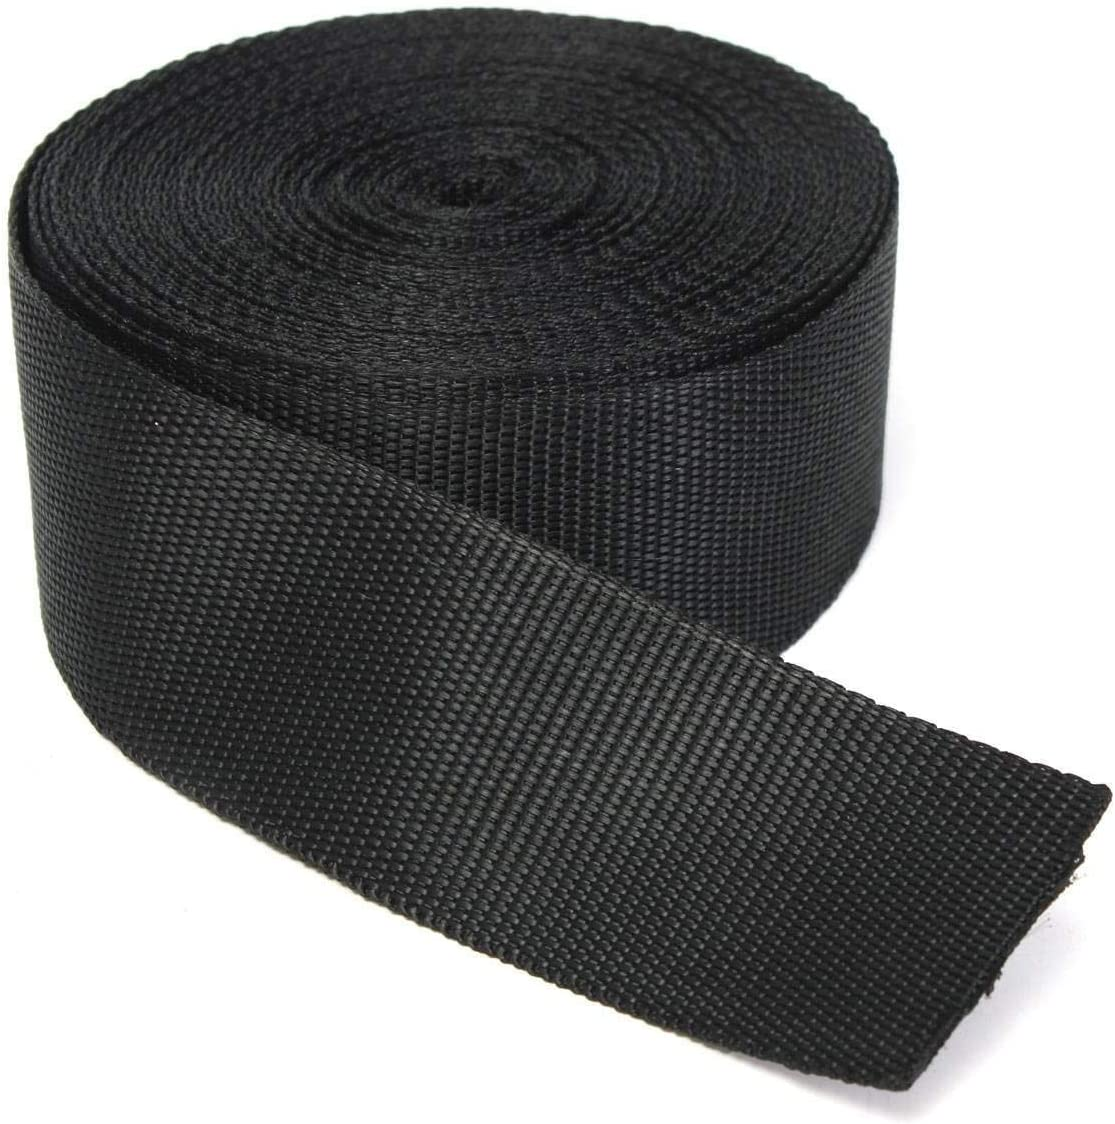 SALE POLYPROPYLENE STRAP WEBBING 25 mm CHOICE OF LENGTHS